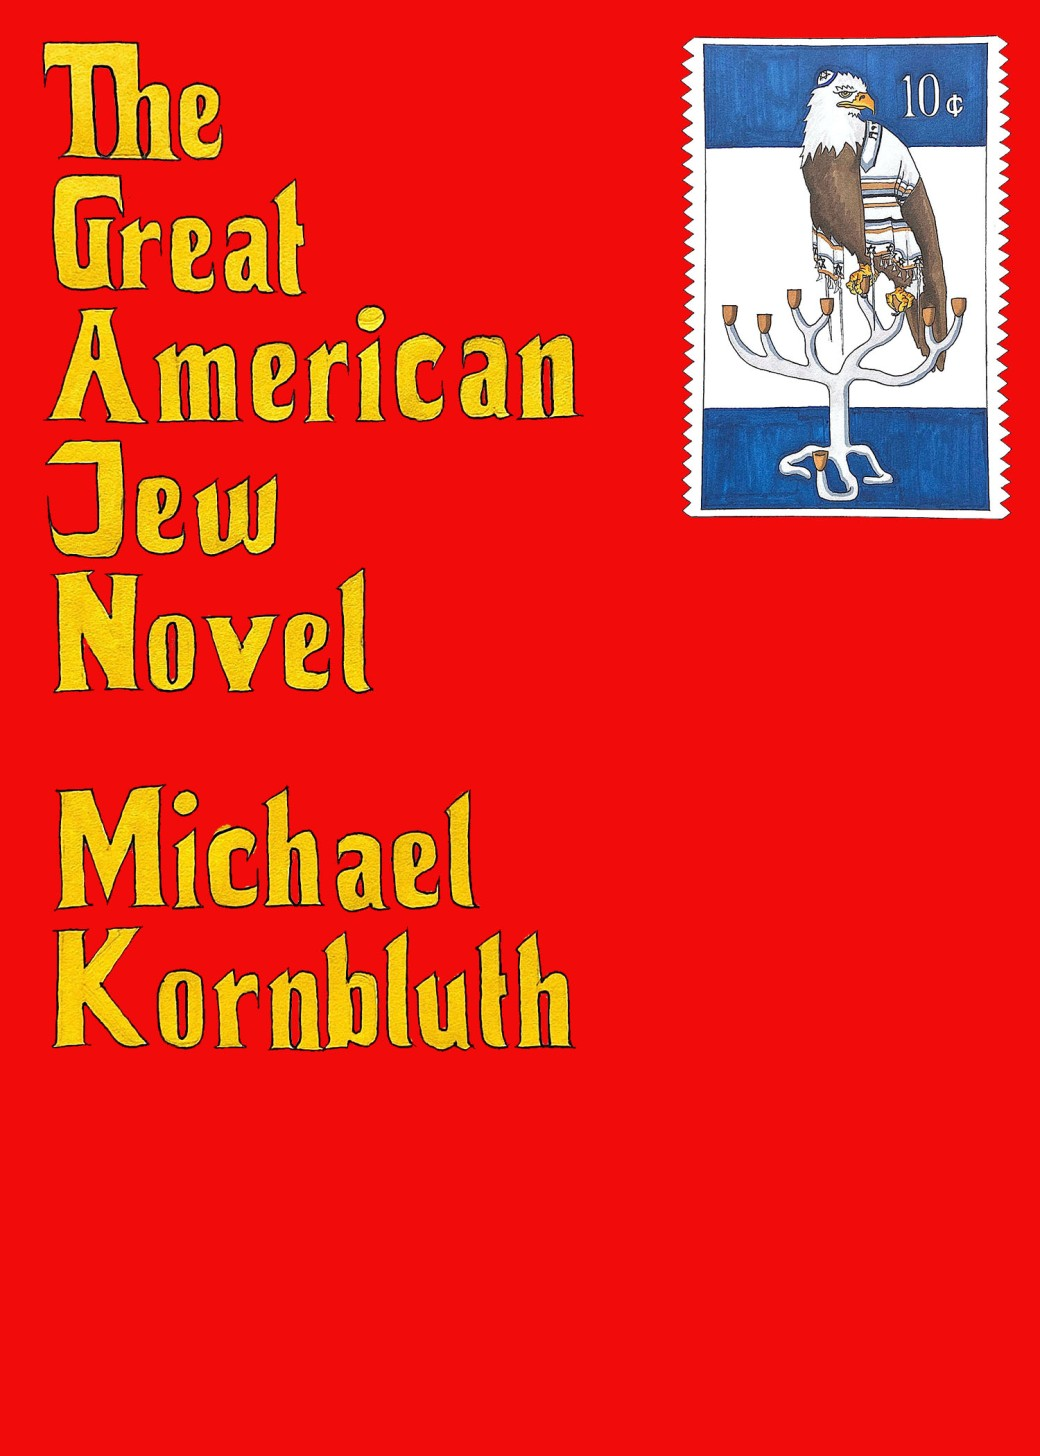 The Great American Jew Novel